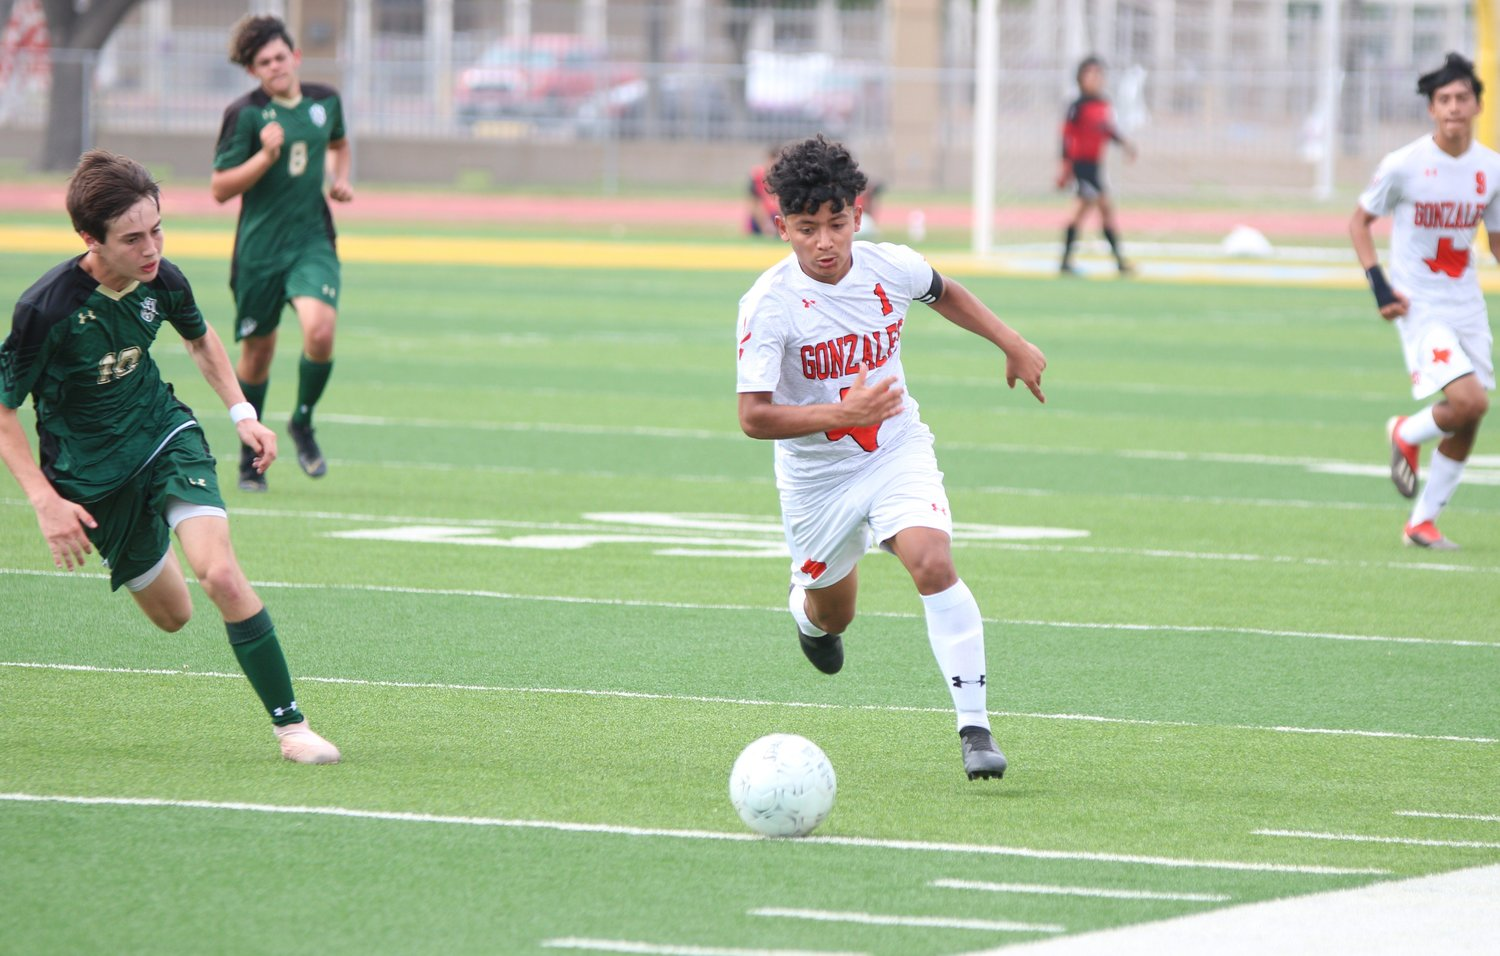 Leading Apaches scorer Anthony Veliz (1) dribbles past a defender.